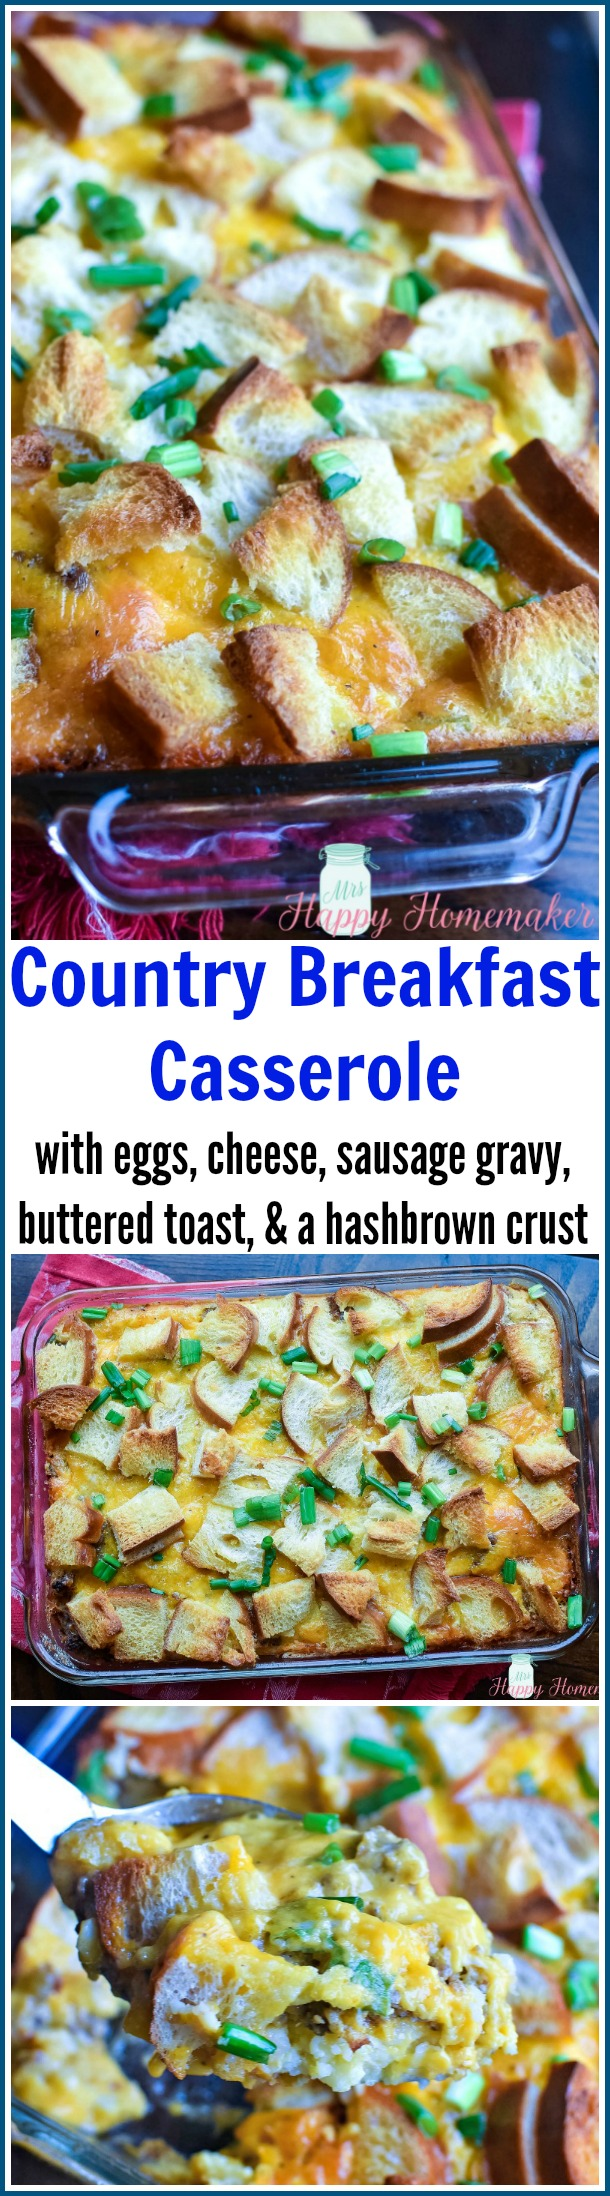 This Country Breakfast Casserole is by far my favorite breakfast casserole recipe. It has eggs, cheese, buttered toast, sausage, & gravy with a hash brown crust.